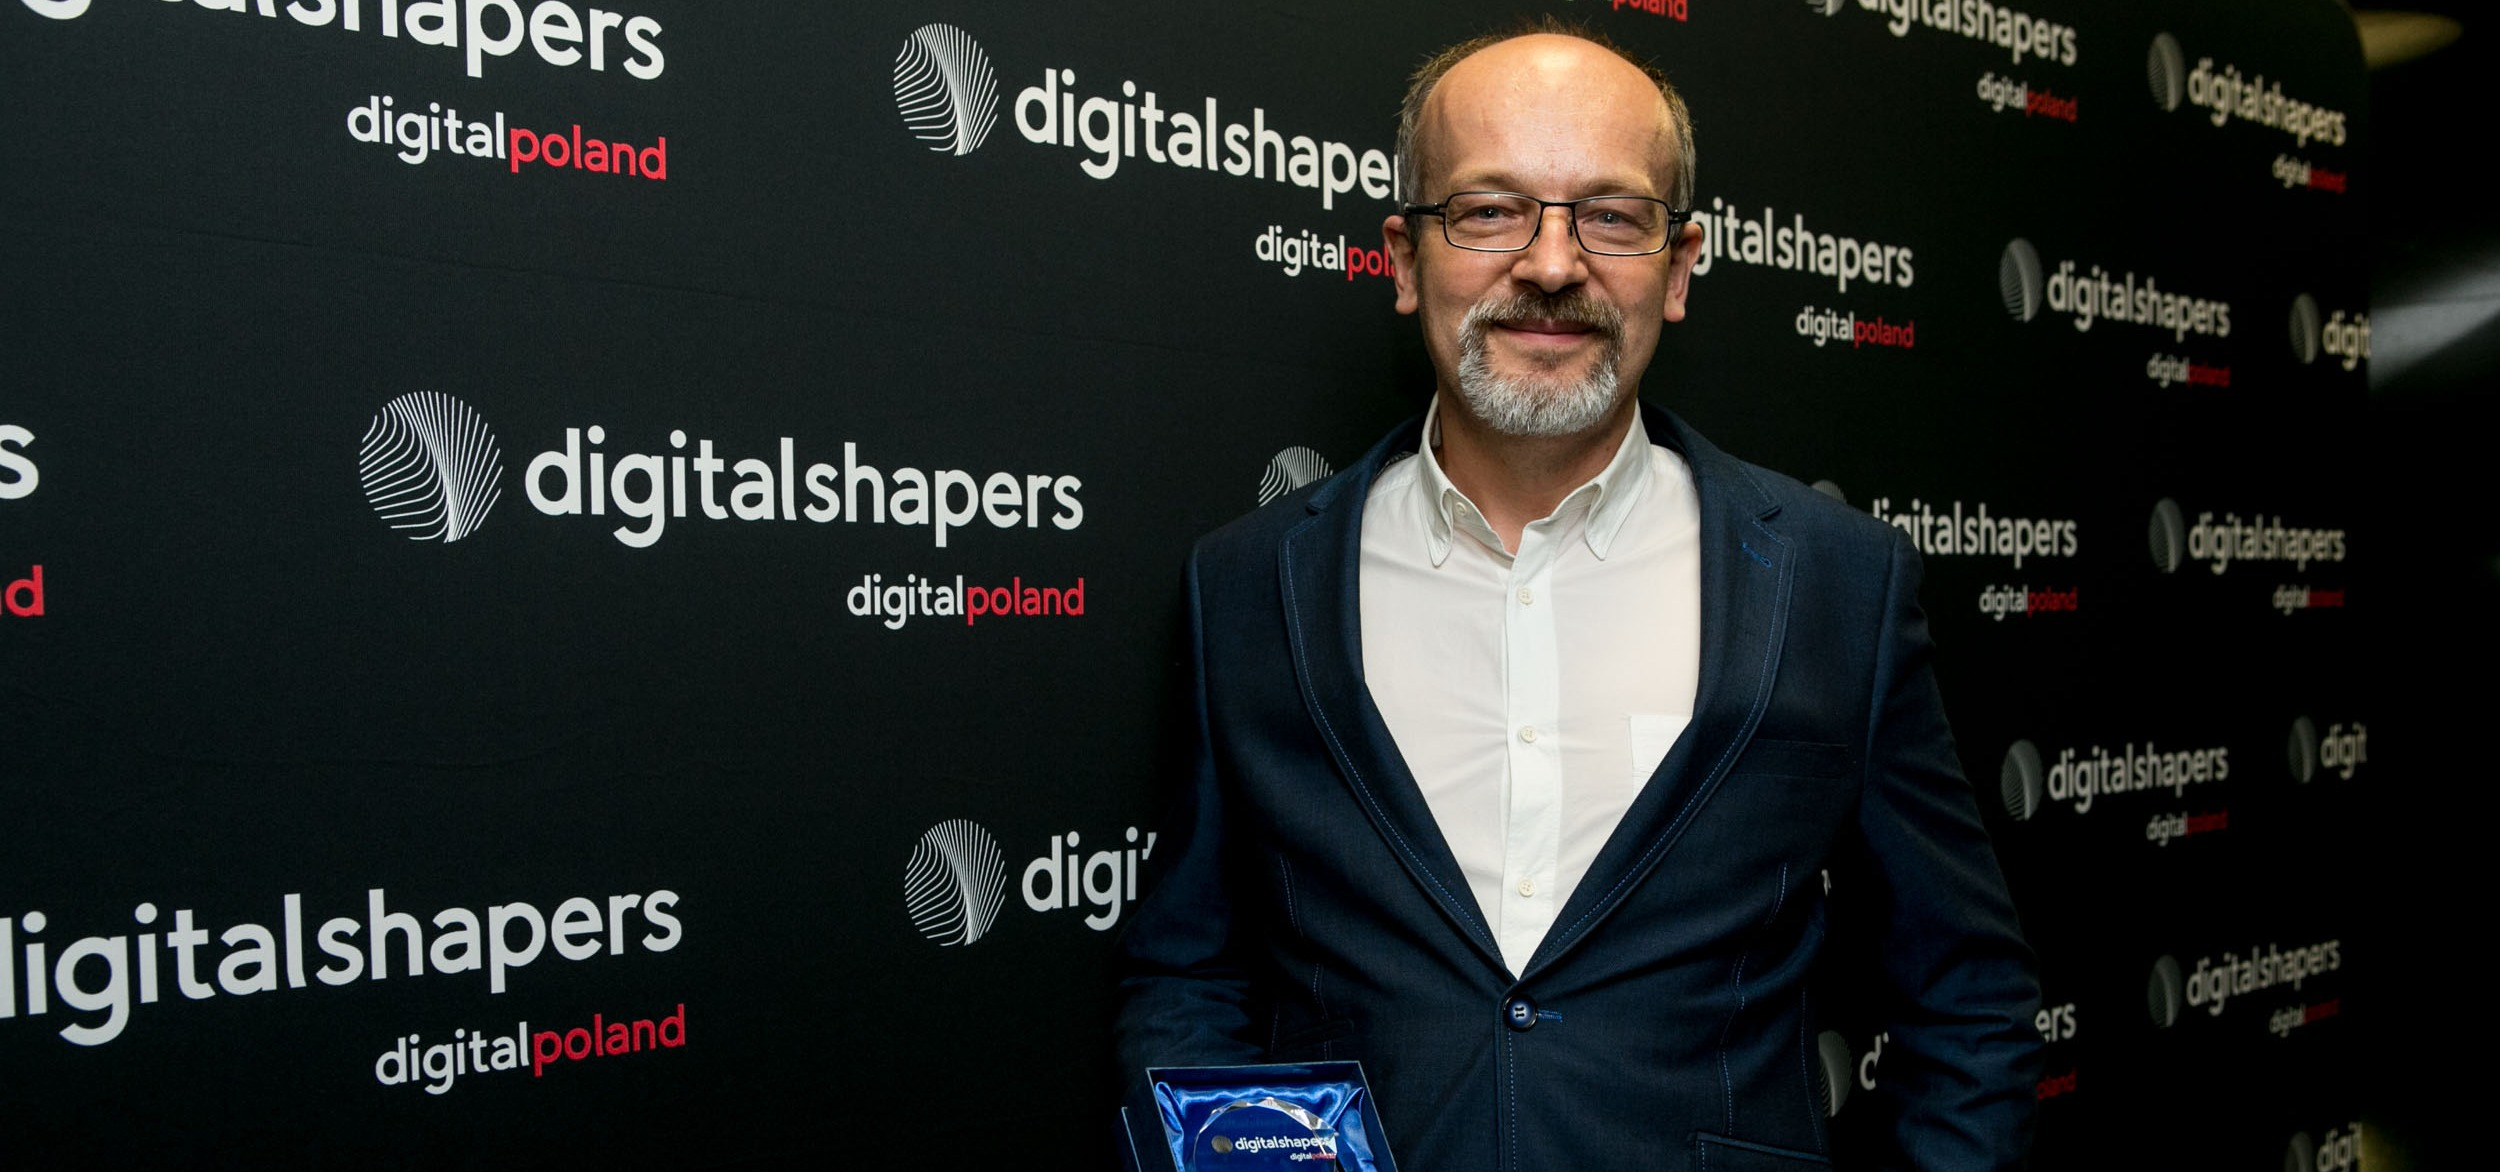 Billon's CEO awarded with Digital Shapers award